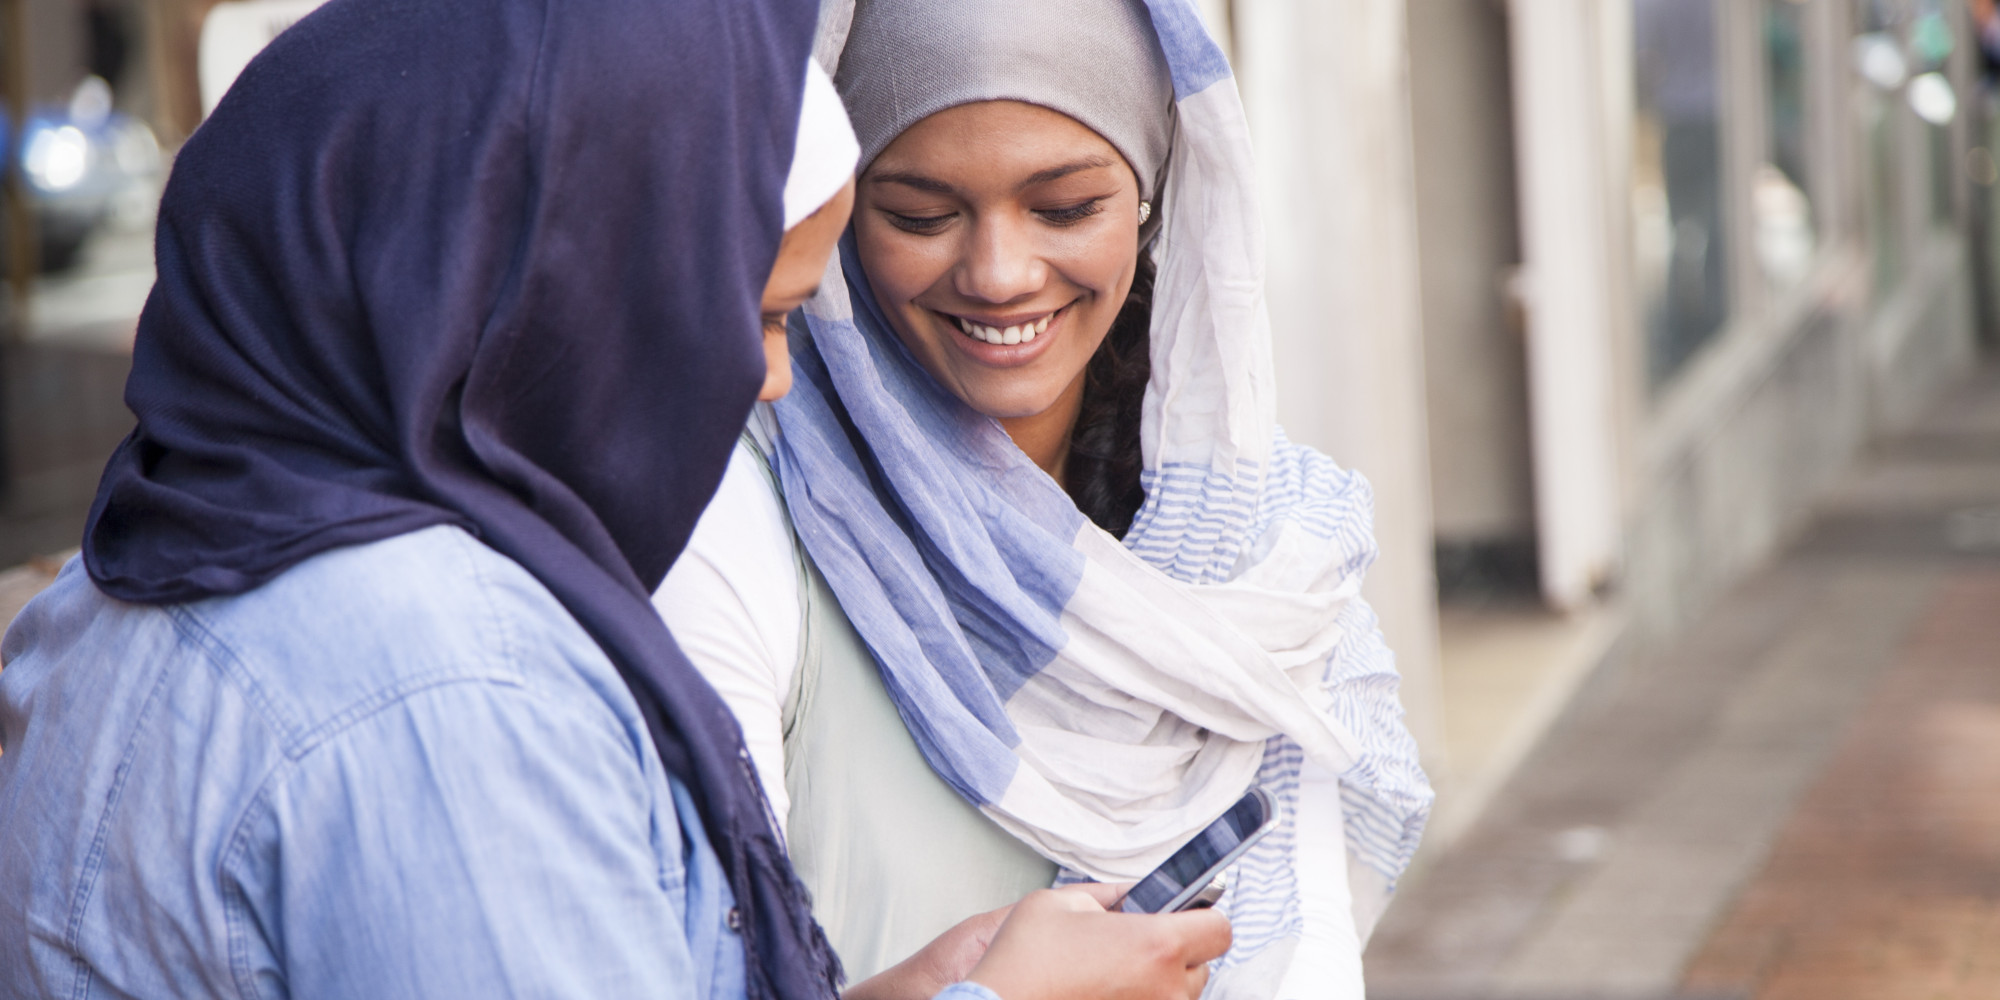 ayrshire muslim single women Widows & widows and widowers use our online dating service to find new love, if you're a widow or a widower and looking to meet new friends, widowsdatingonline is for.